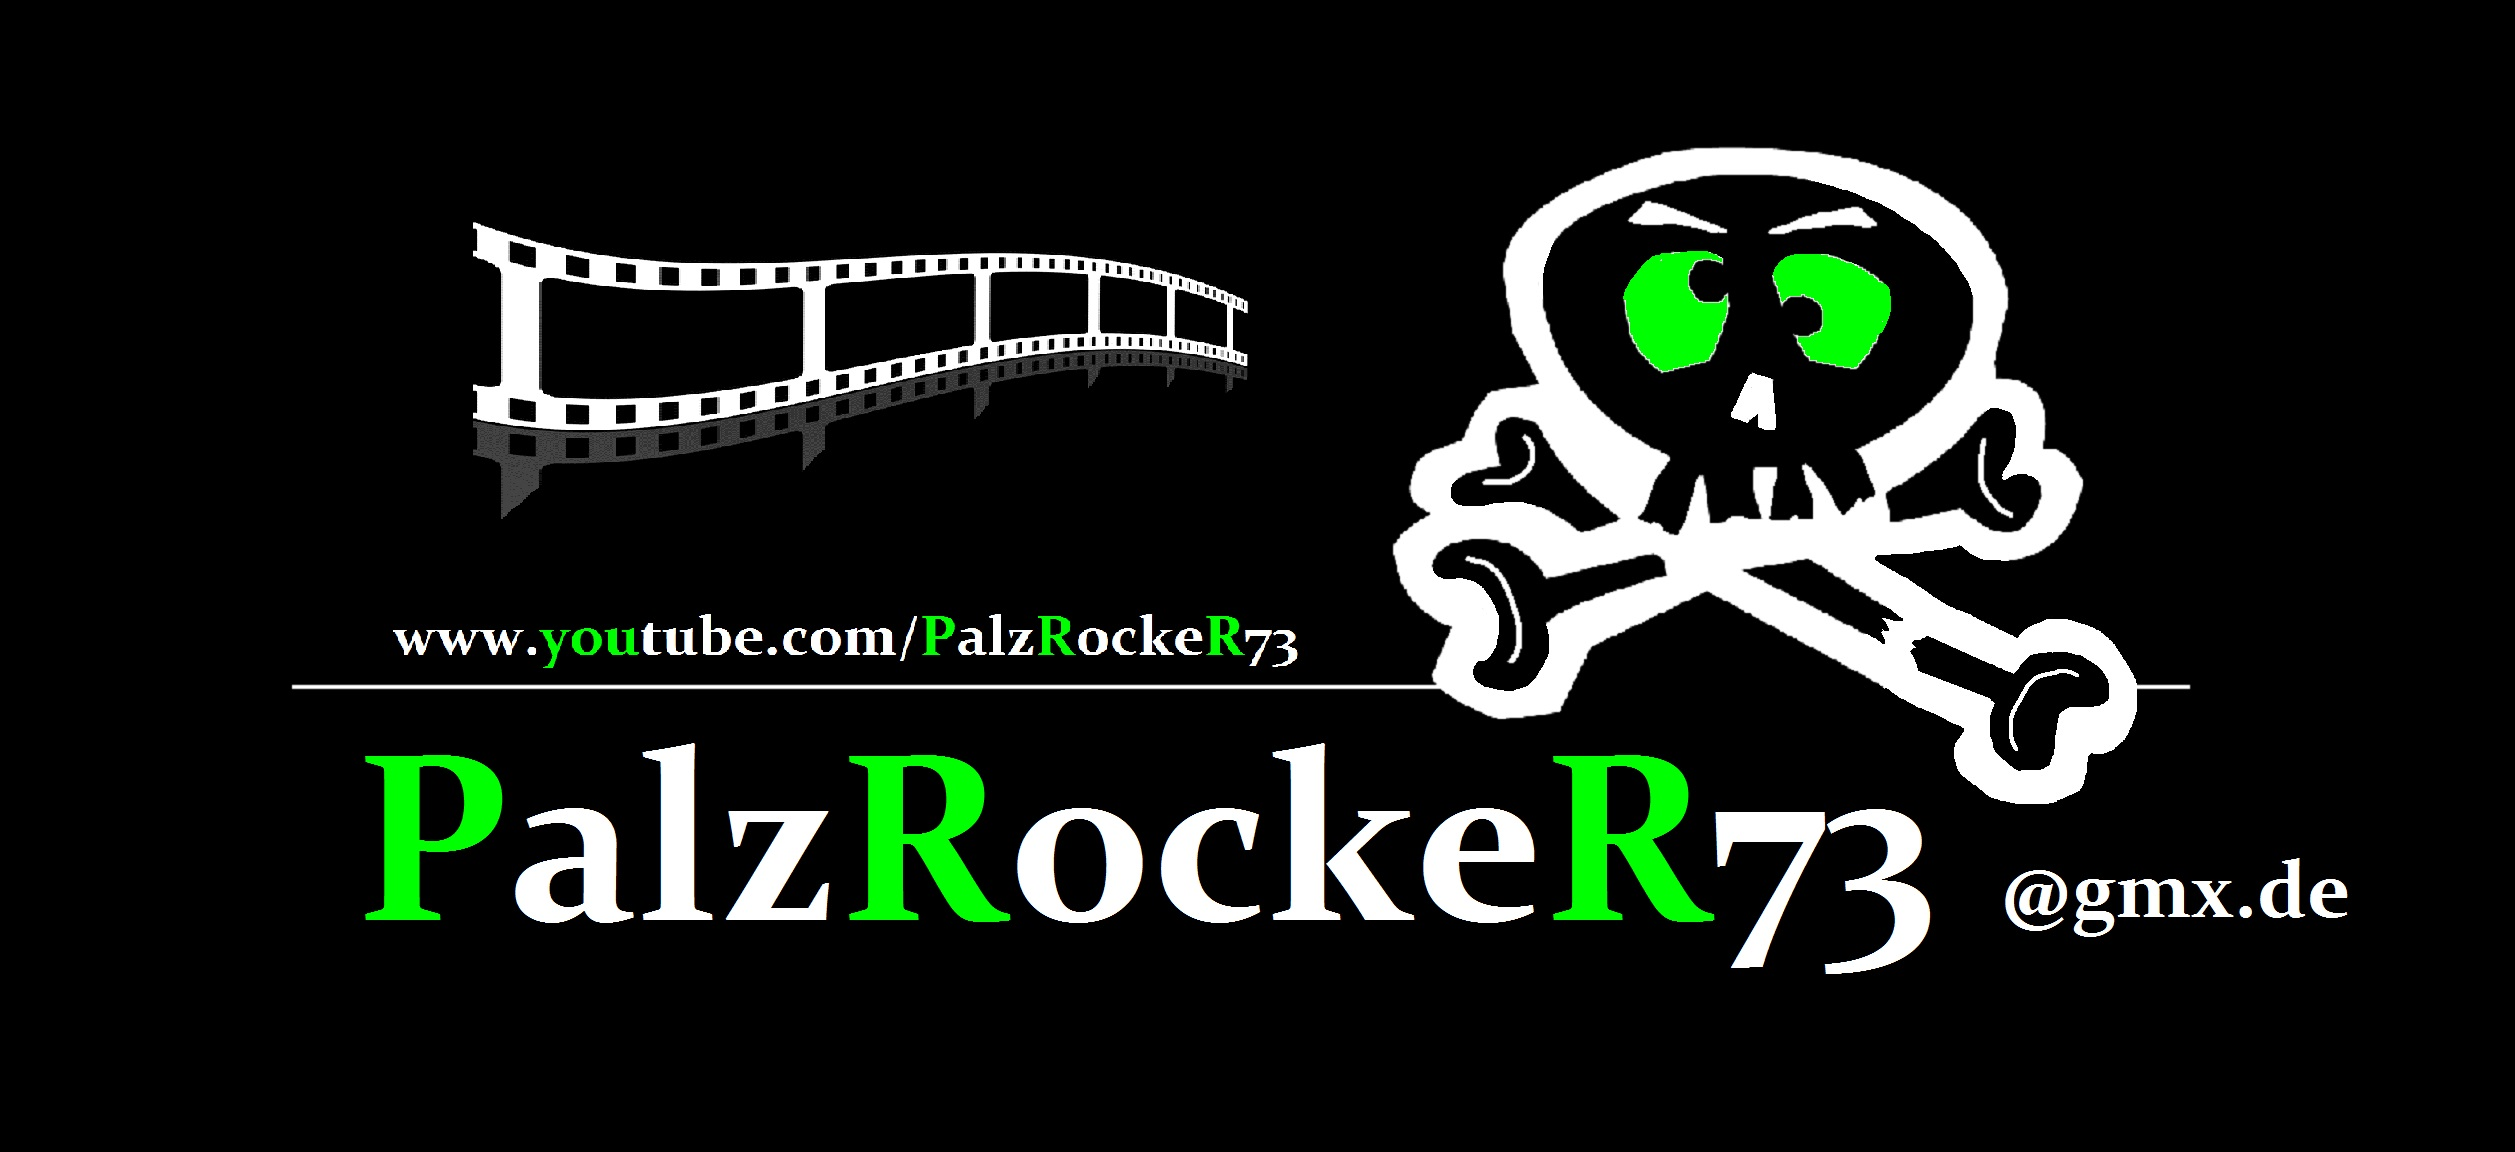 PalzRockeR73